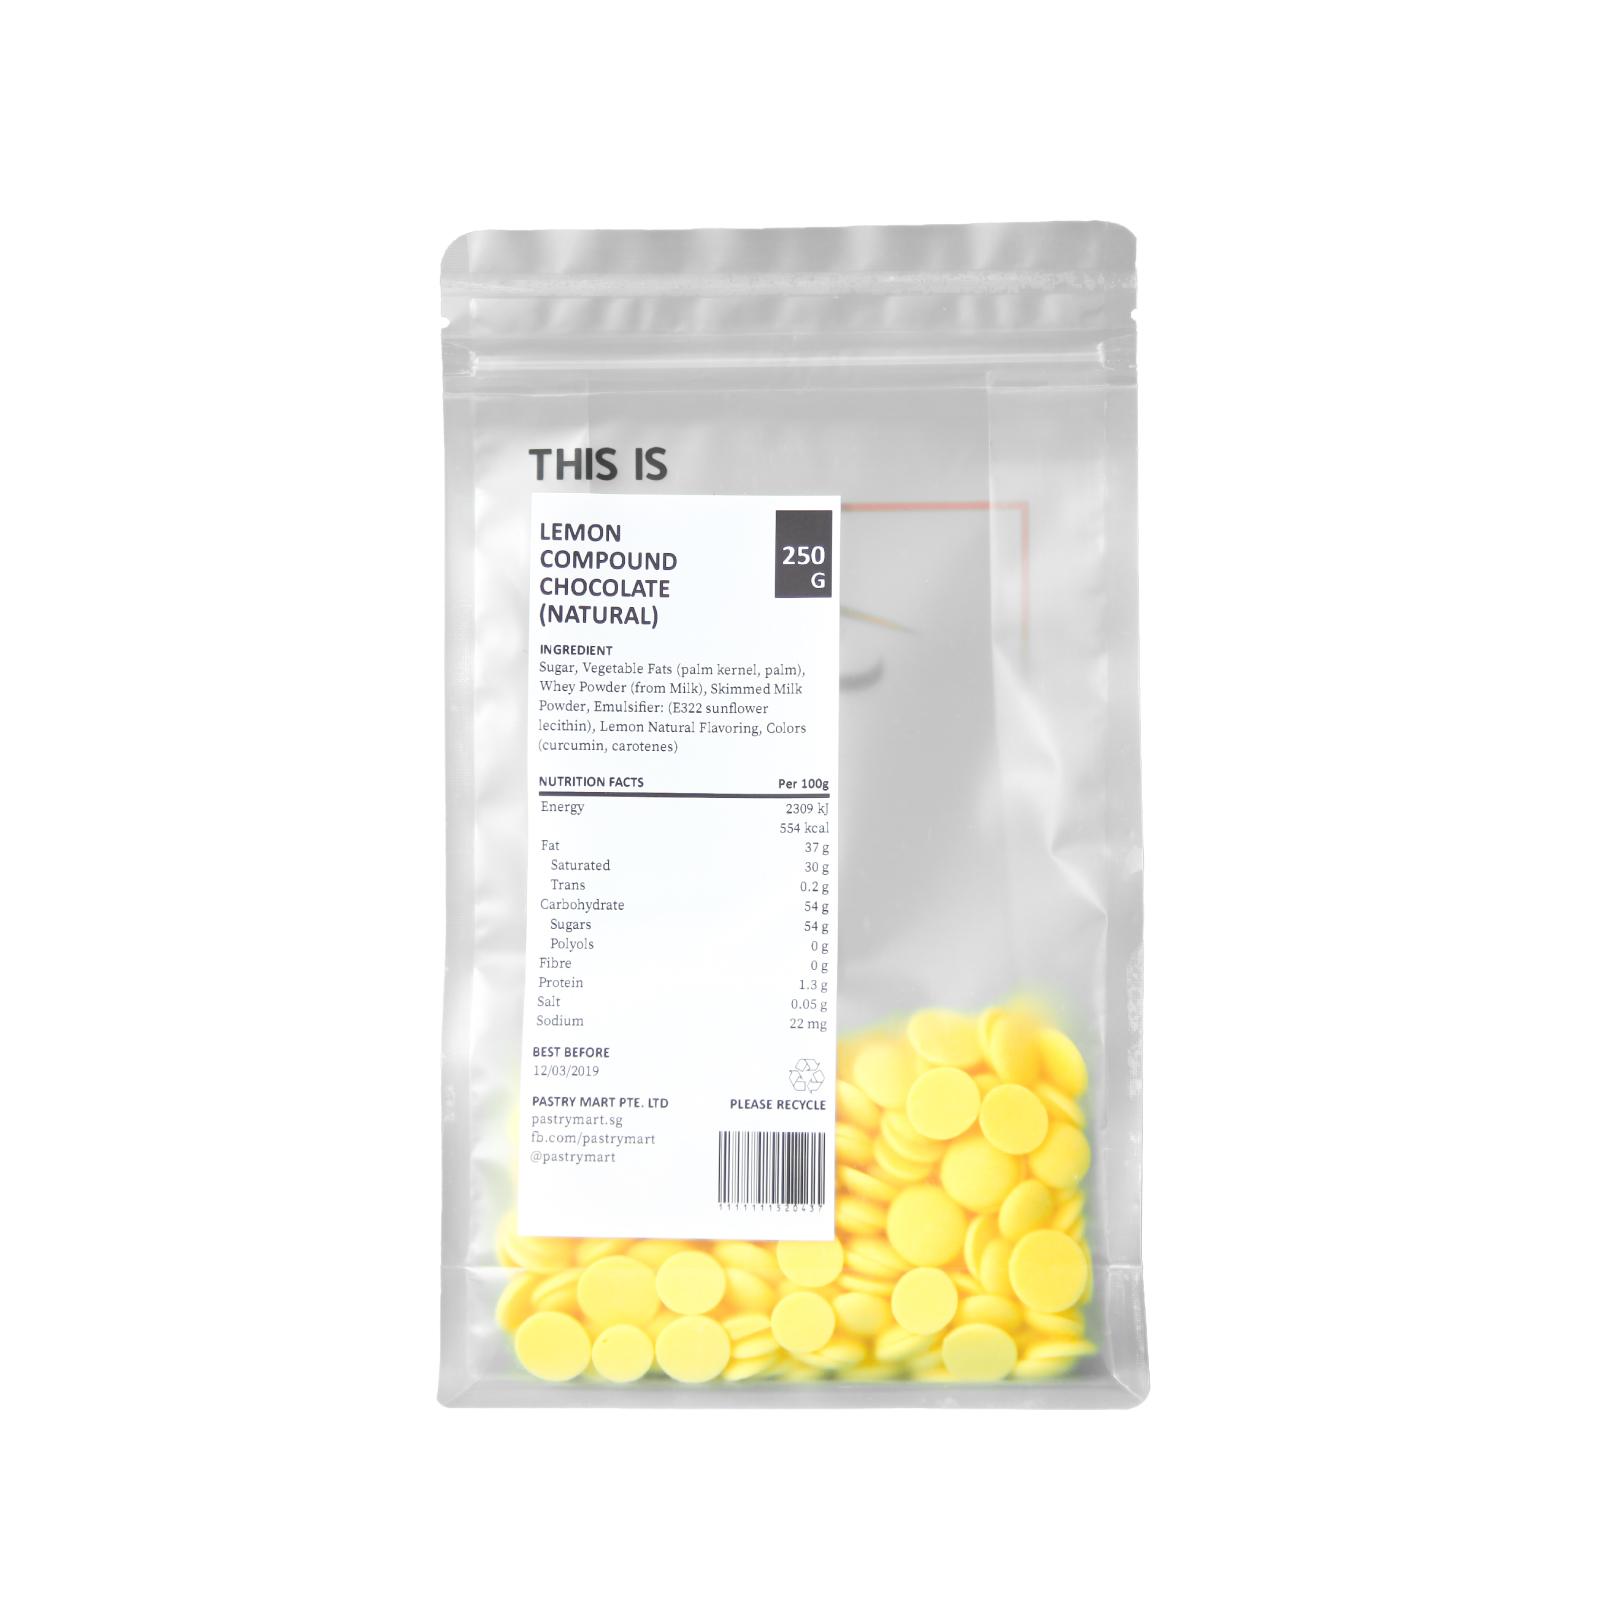 Pastry Mart Lemon Compound Chocolate (Natural Flavouring and Colouring) - 250 g